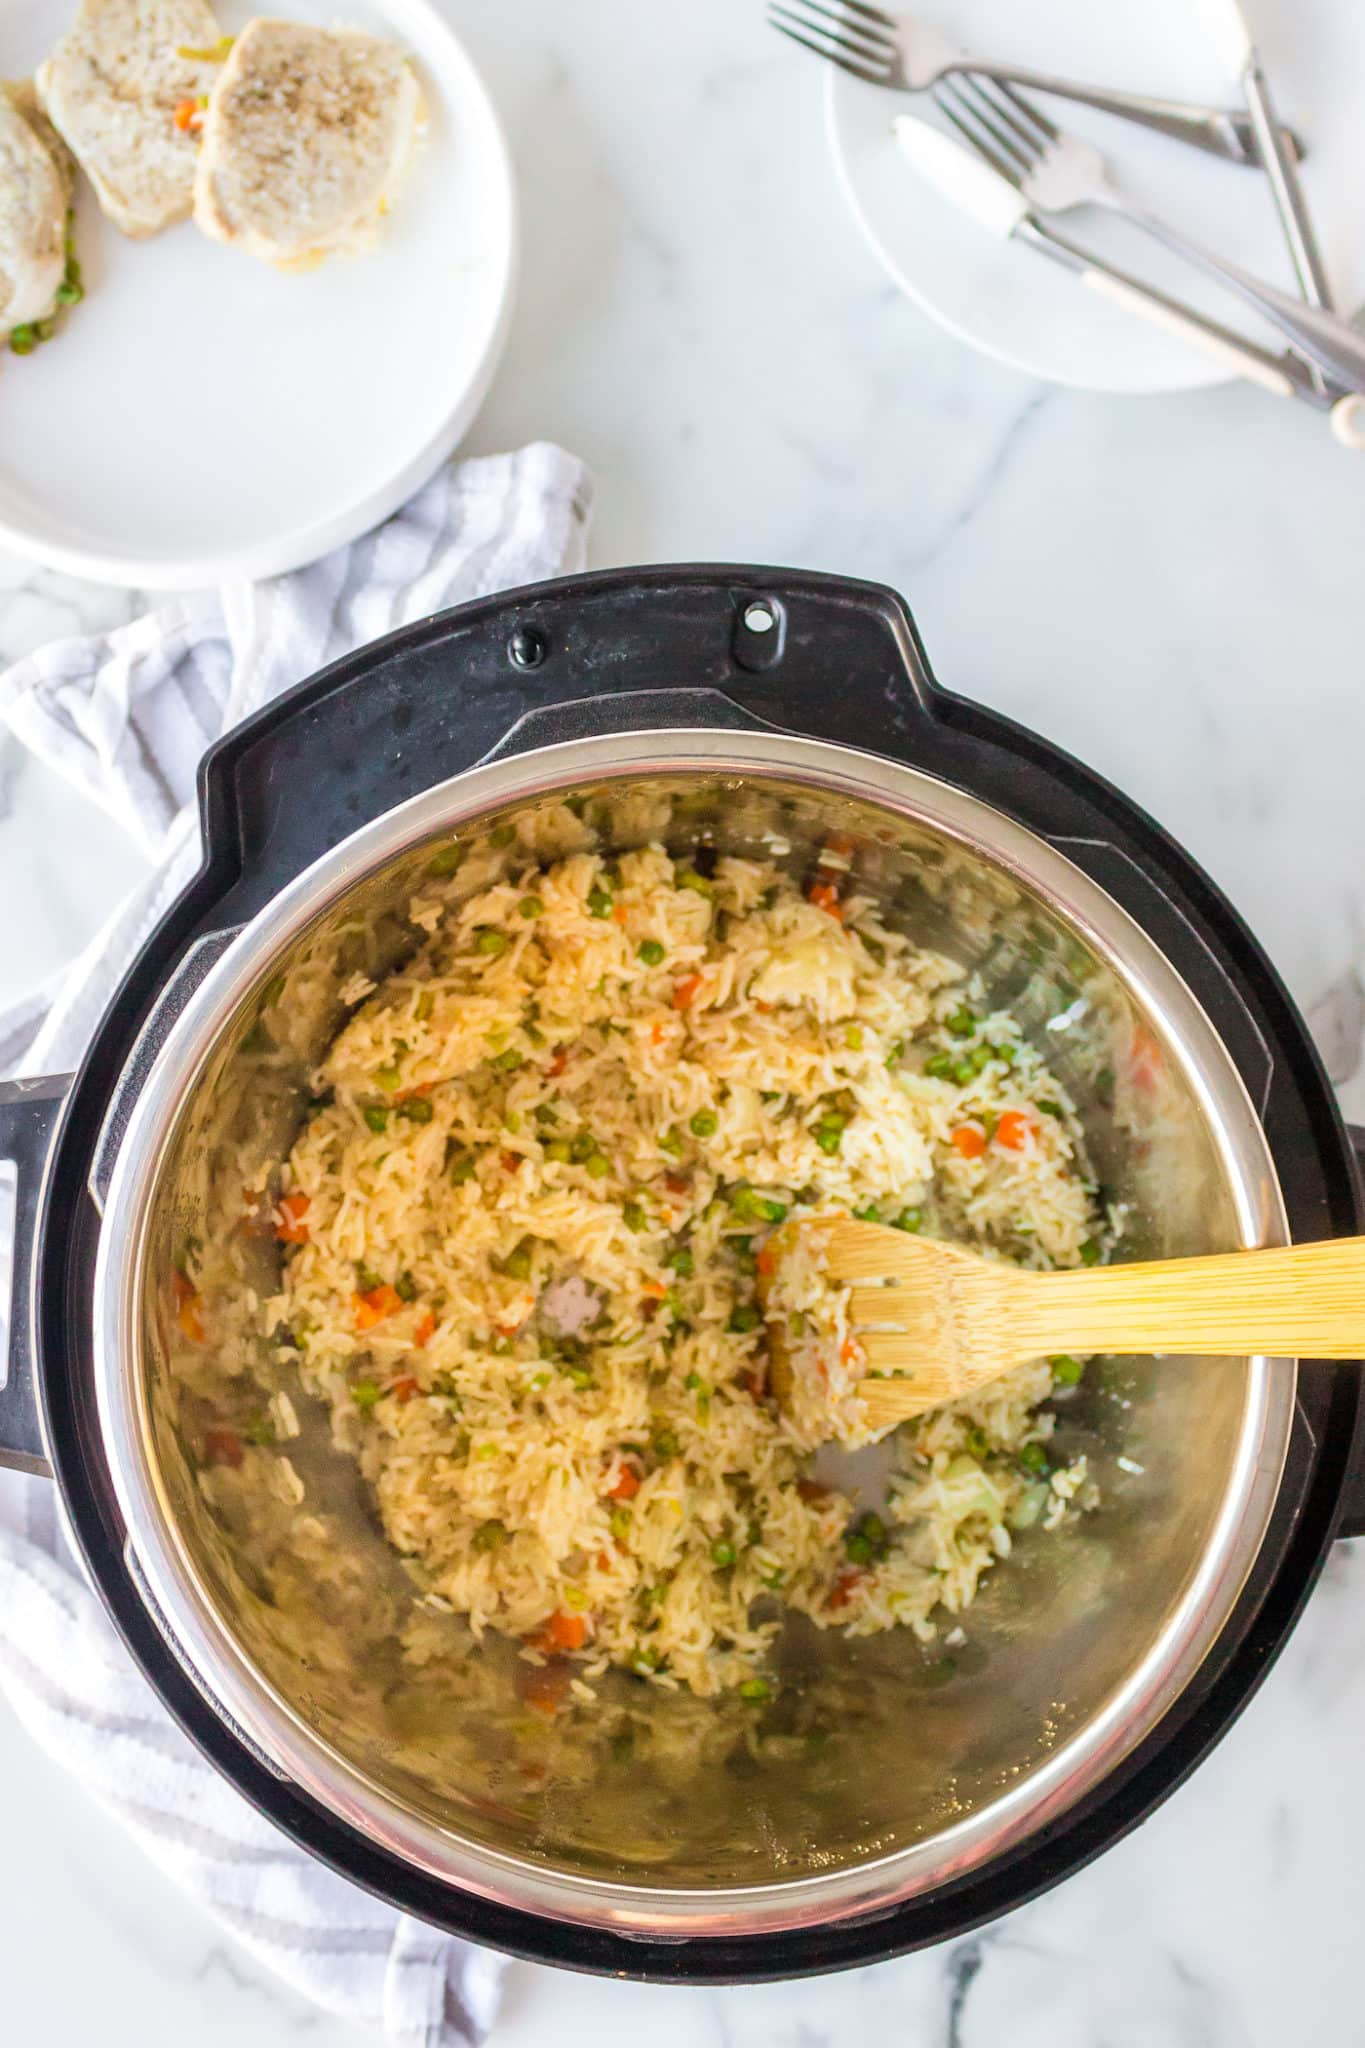 cooked rice and veggies in an instant pot pressure cooker, with the cooked pork on the side